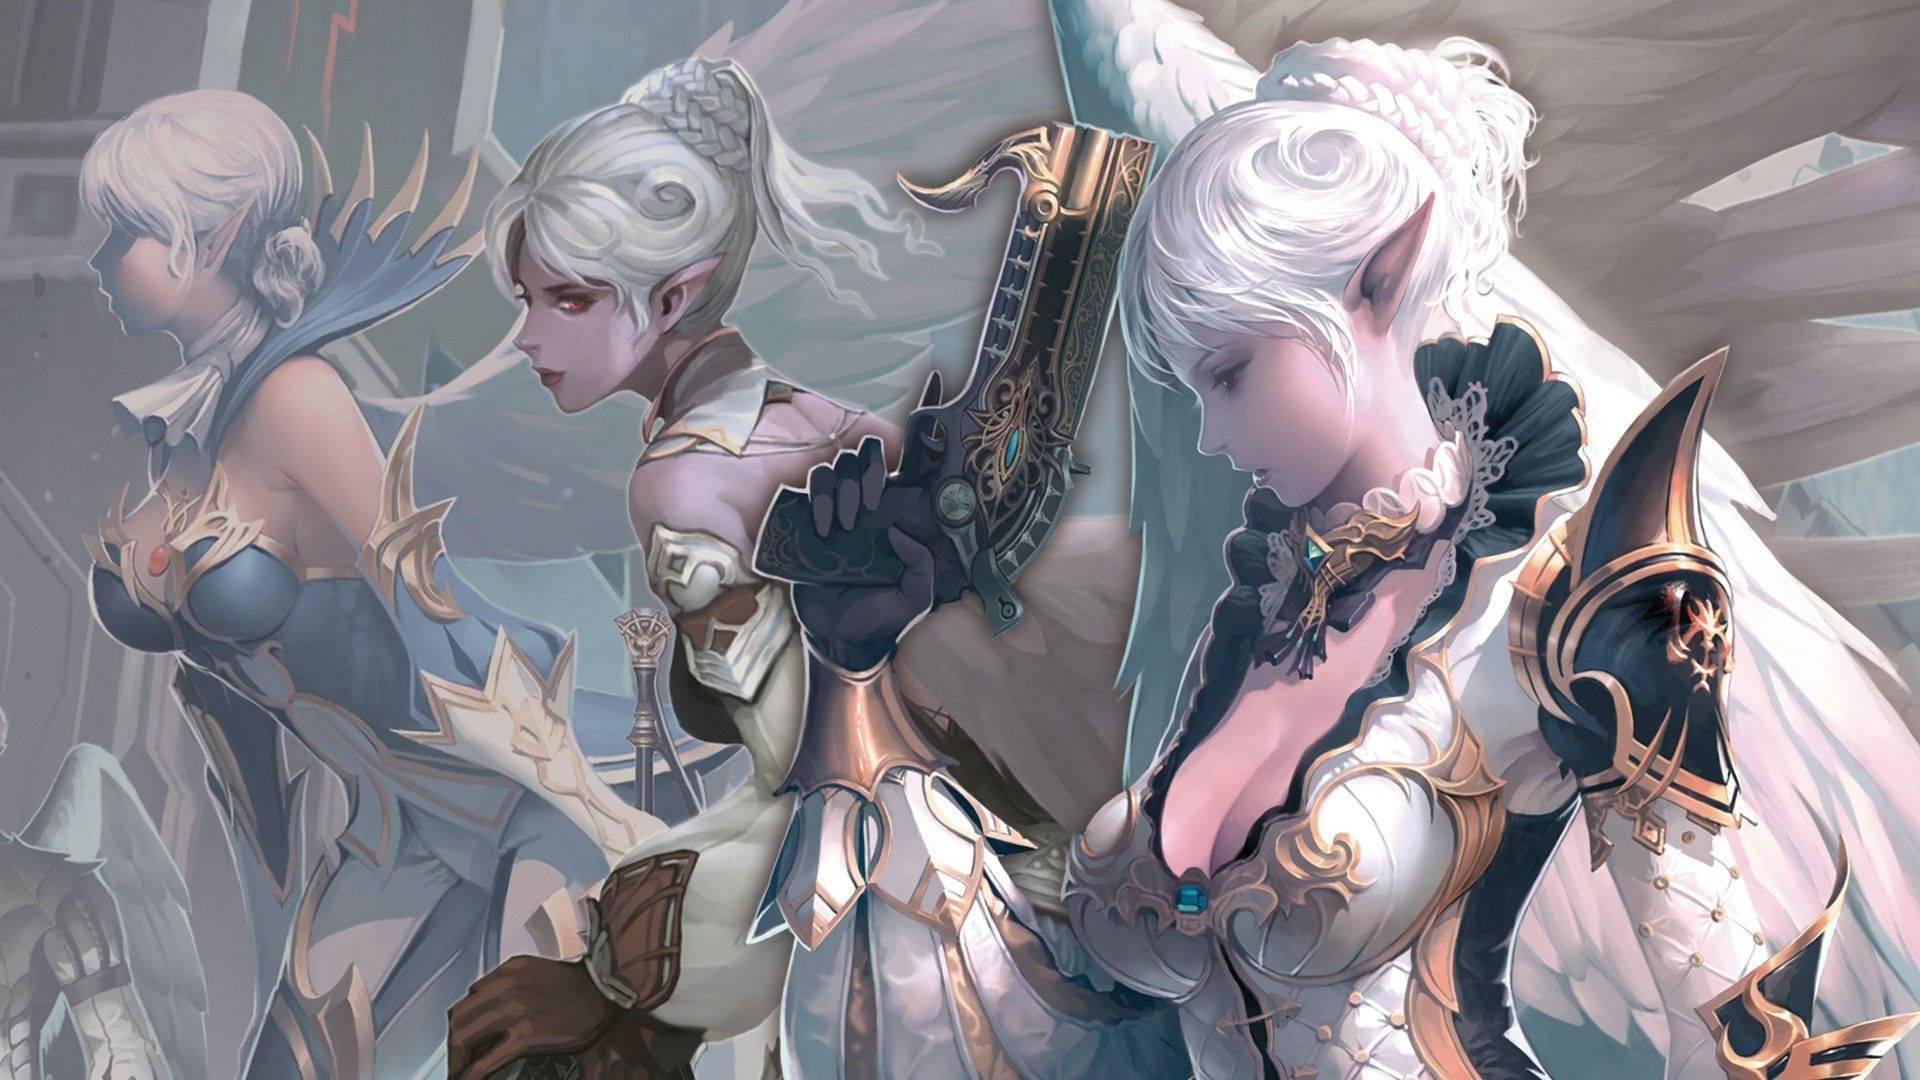 Lineage 2 1382019 1